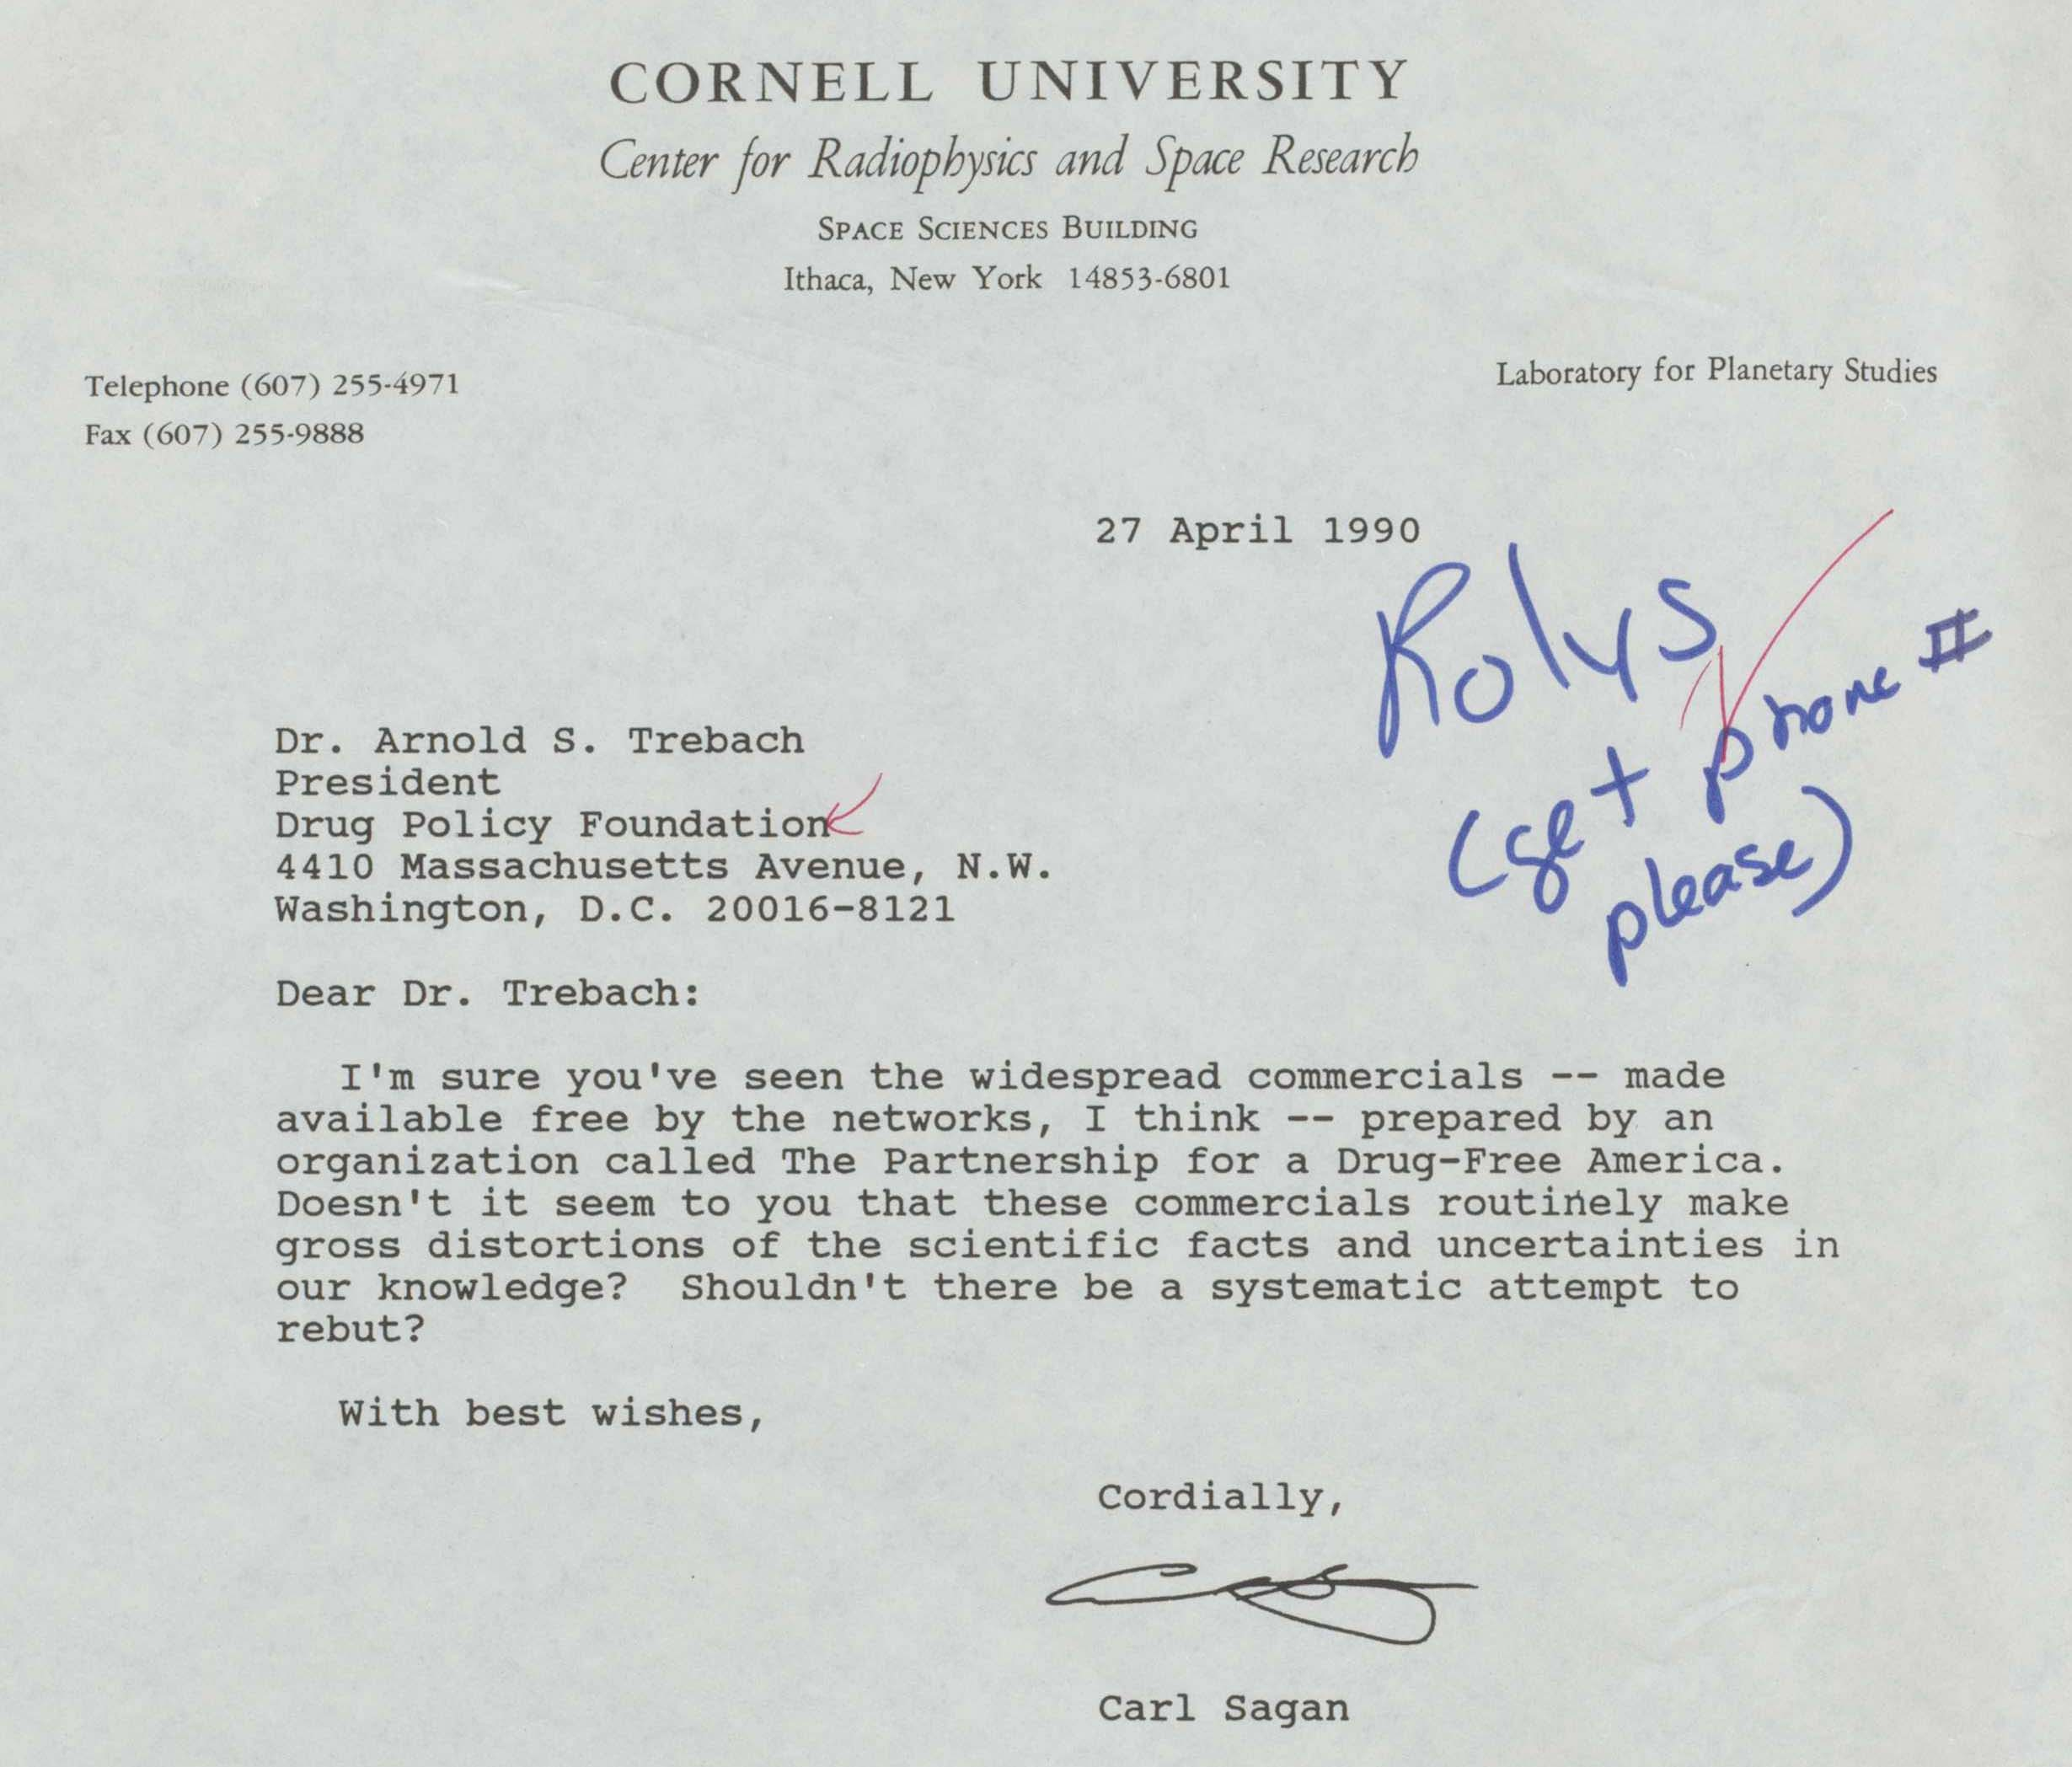 carl sagan s newly revealed letters about the war on drugs vox carl sagan marijuana war on drugs letter 1990